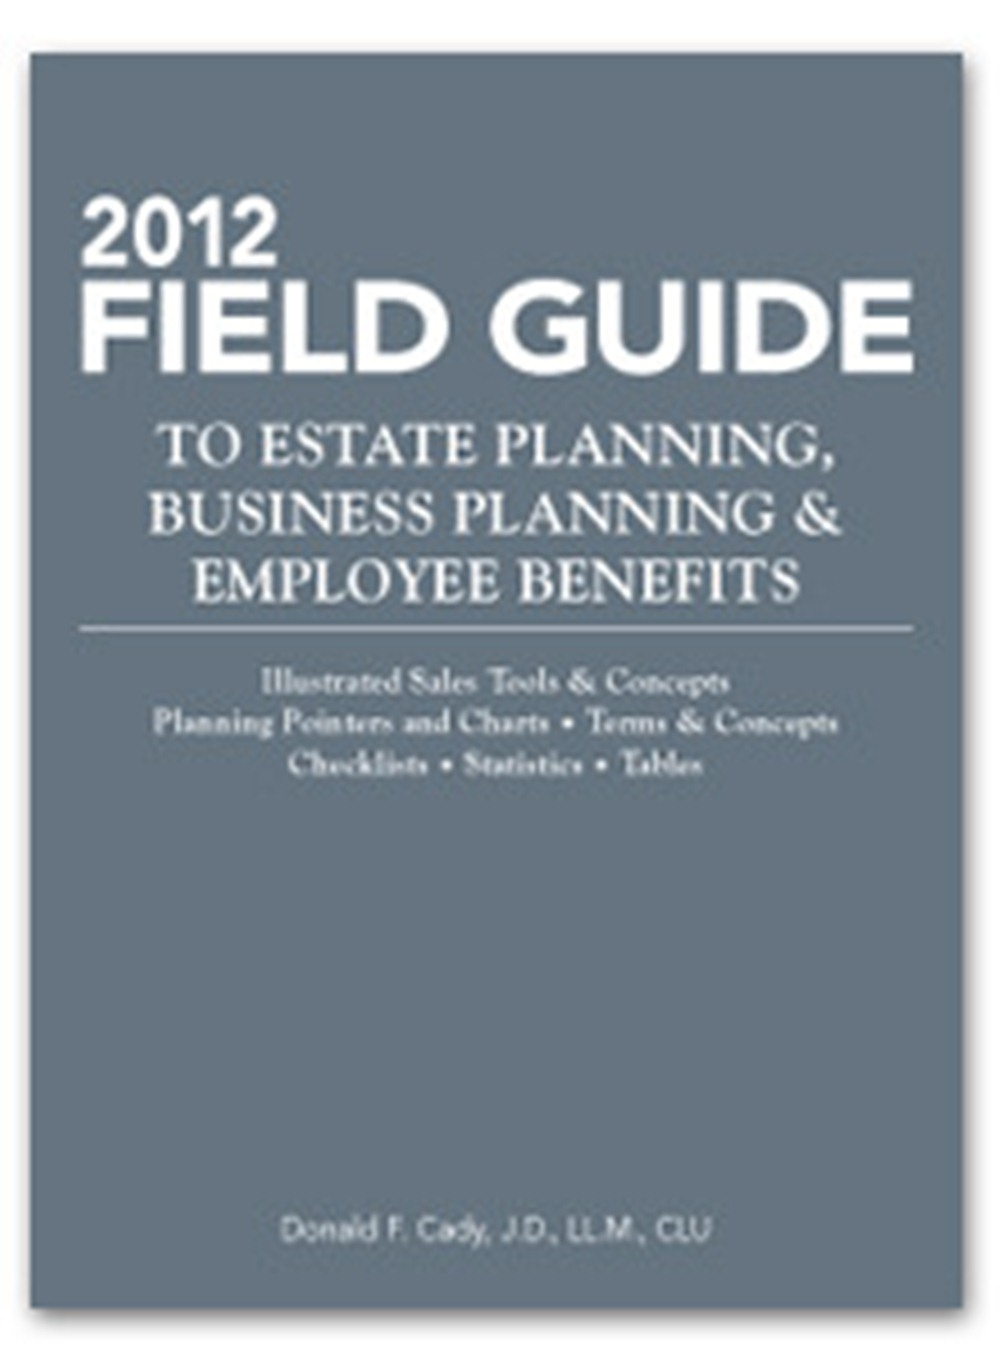 2012 Field Guide to Estate Planning, Business Planning & Employee Benefits